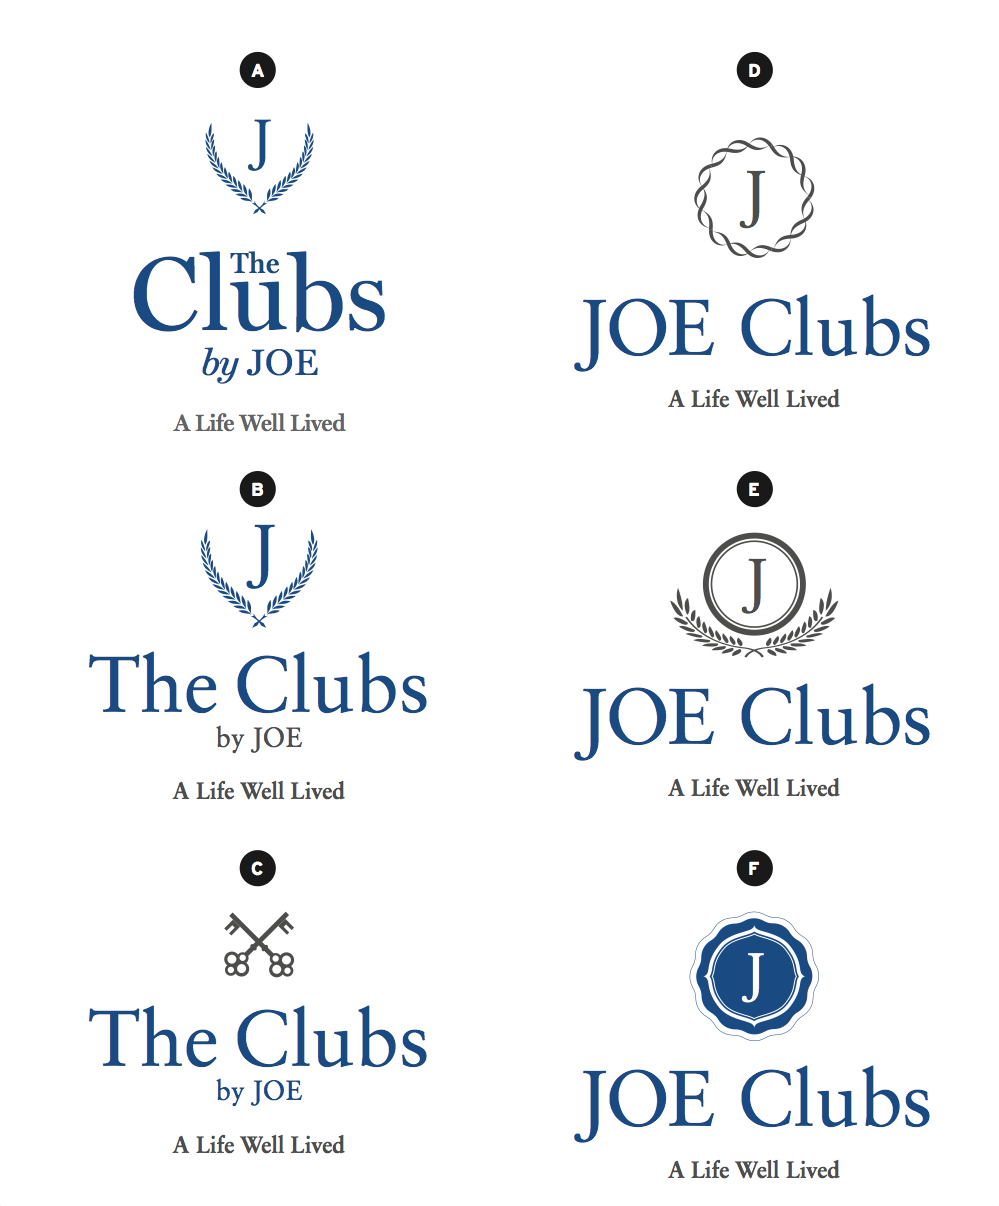 Design Process for St JOE's new logo